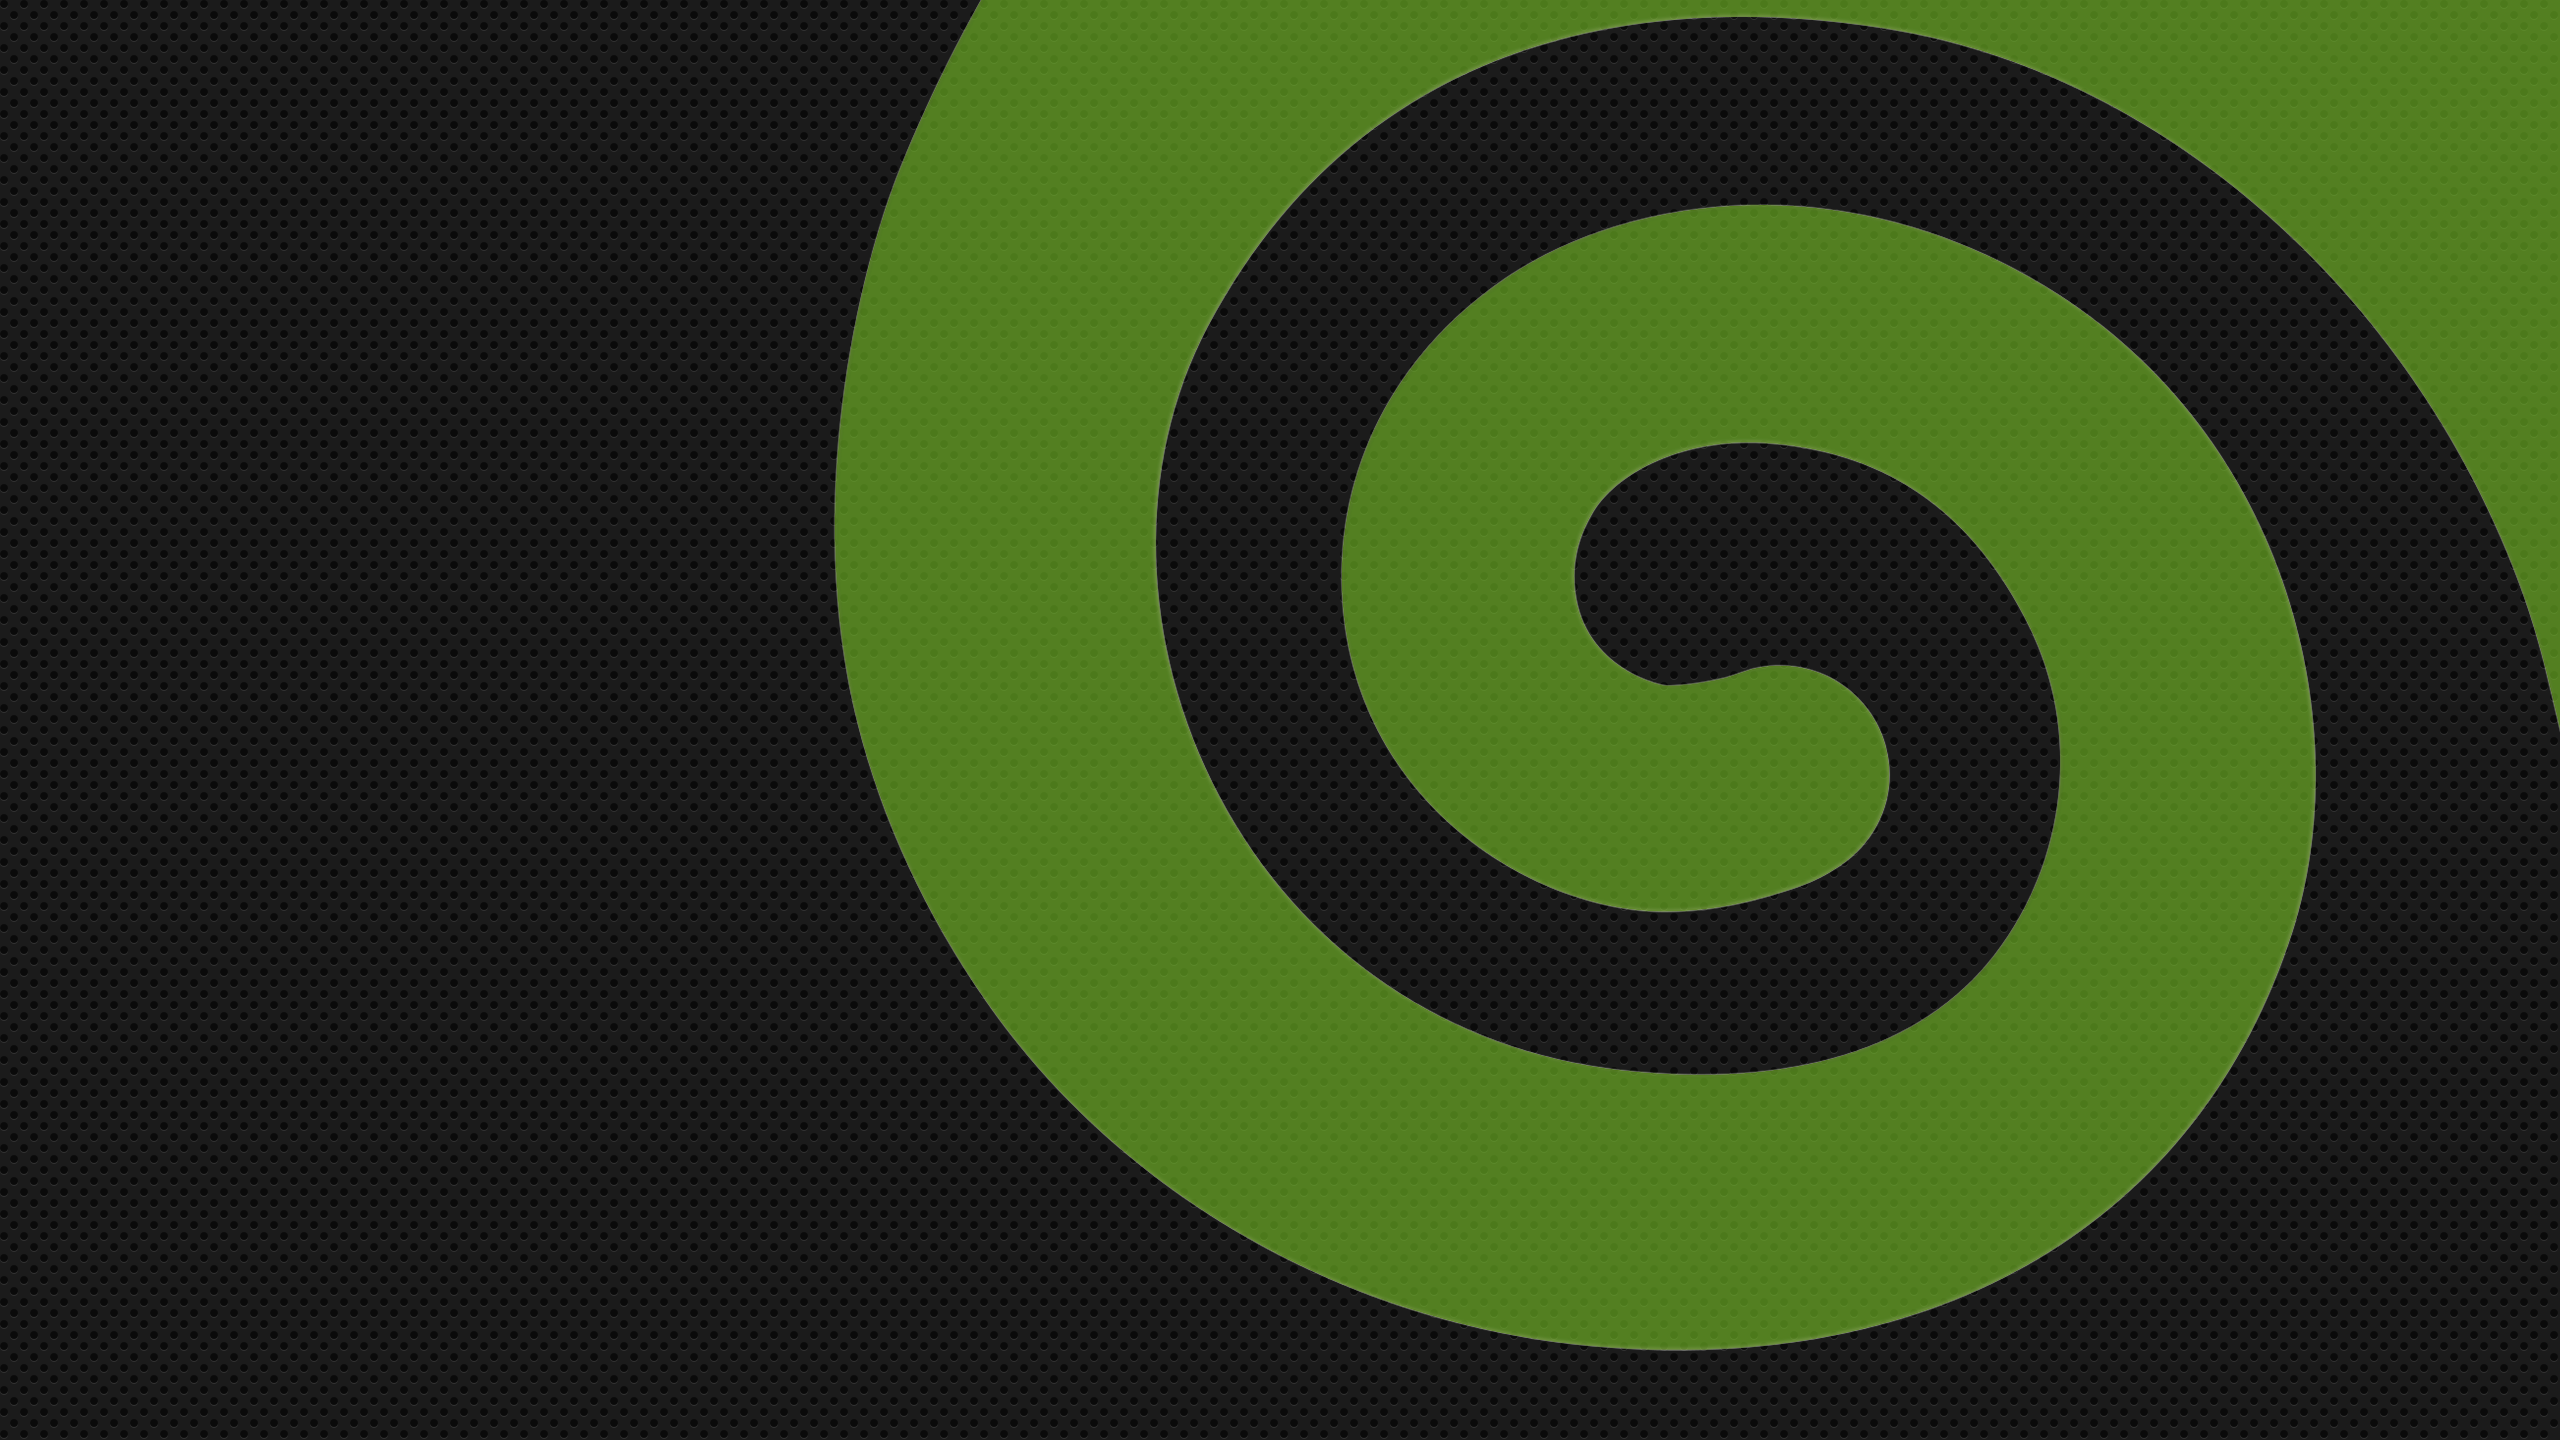 2560x1440 openSUSE:Wallpapers - openSUSE Wiki